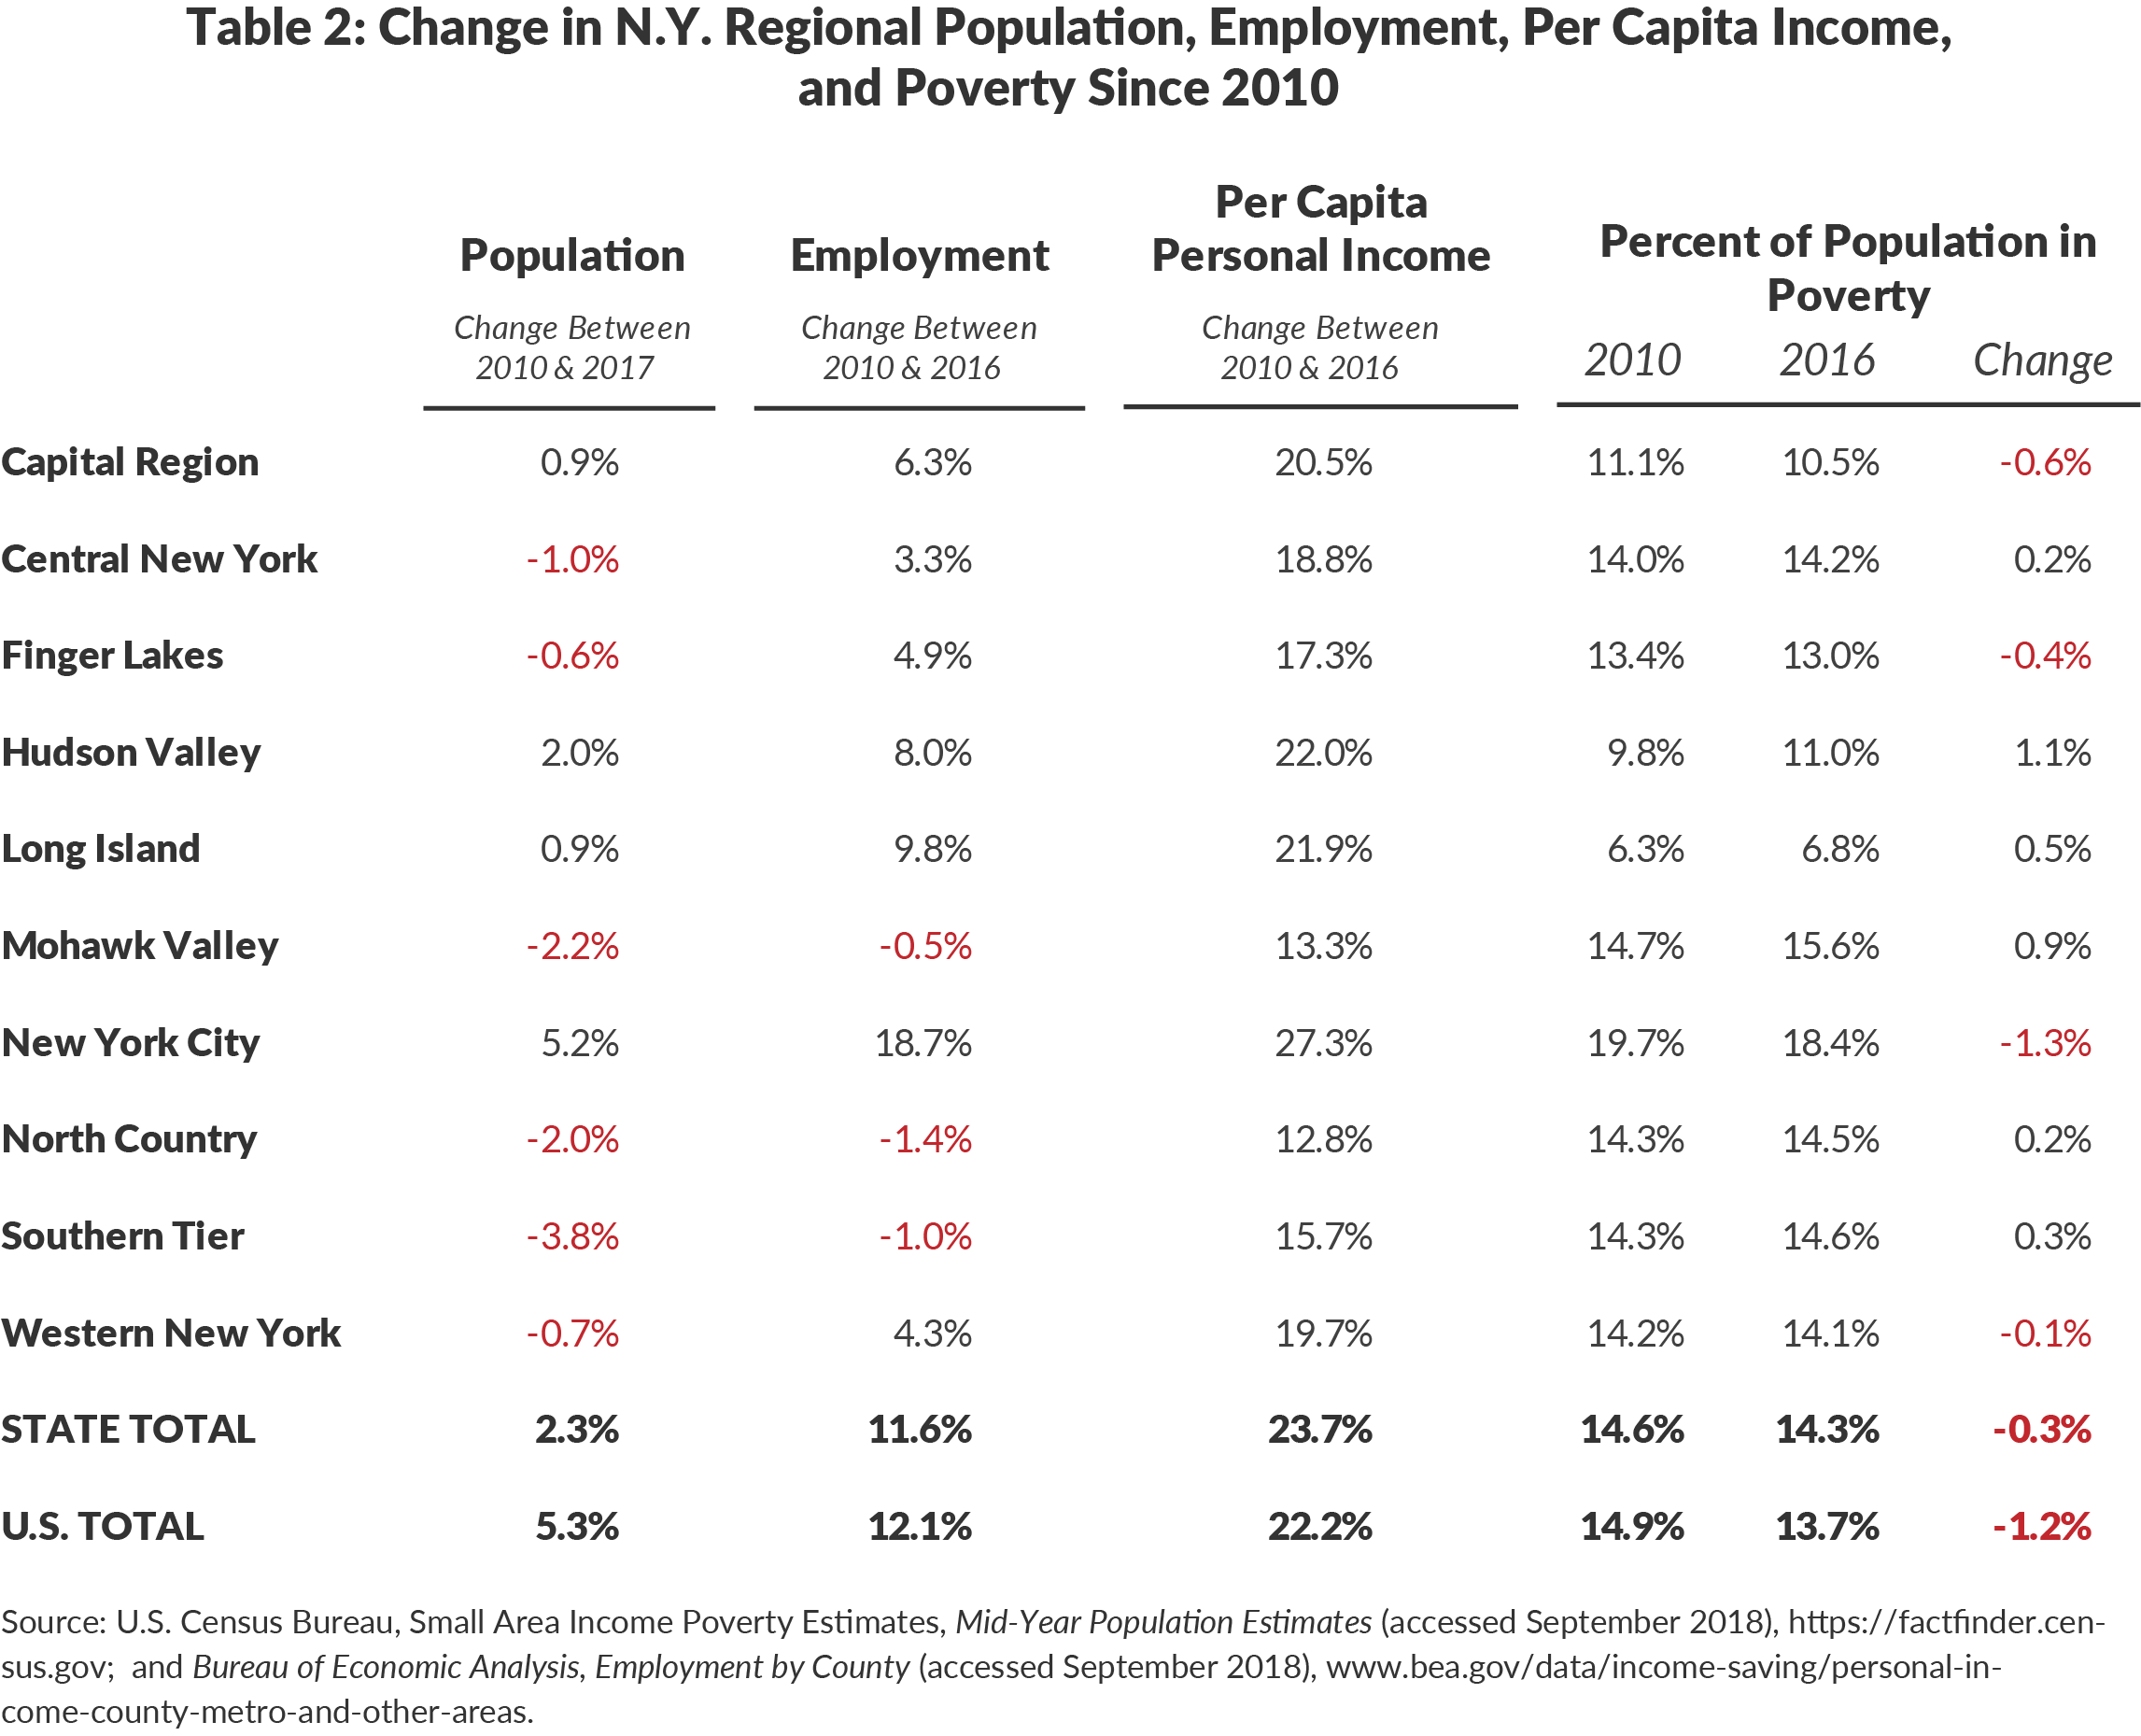 Table 2: Change in N.Y. Regional Population, Employment, Per Capita Income,and Poverty Since 2010